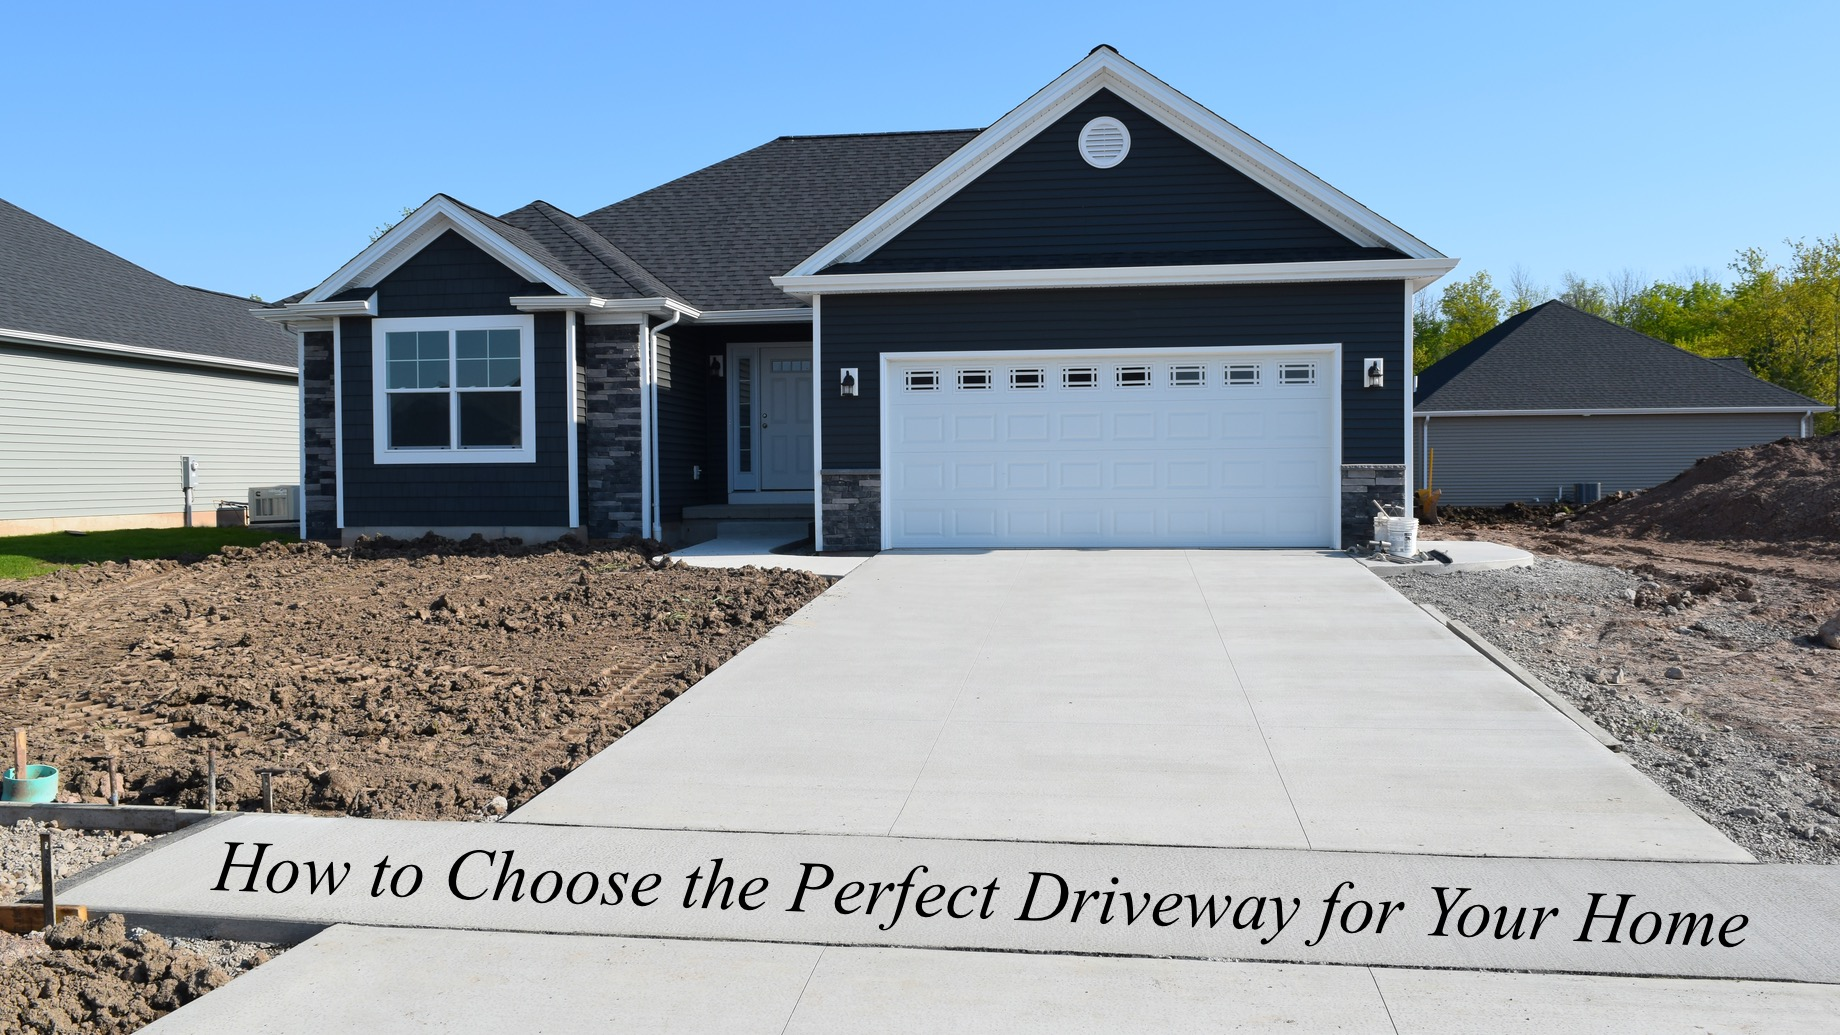 How to Choose the Perfect Driveway for Your Home